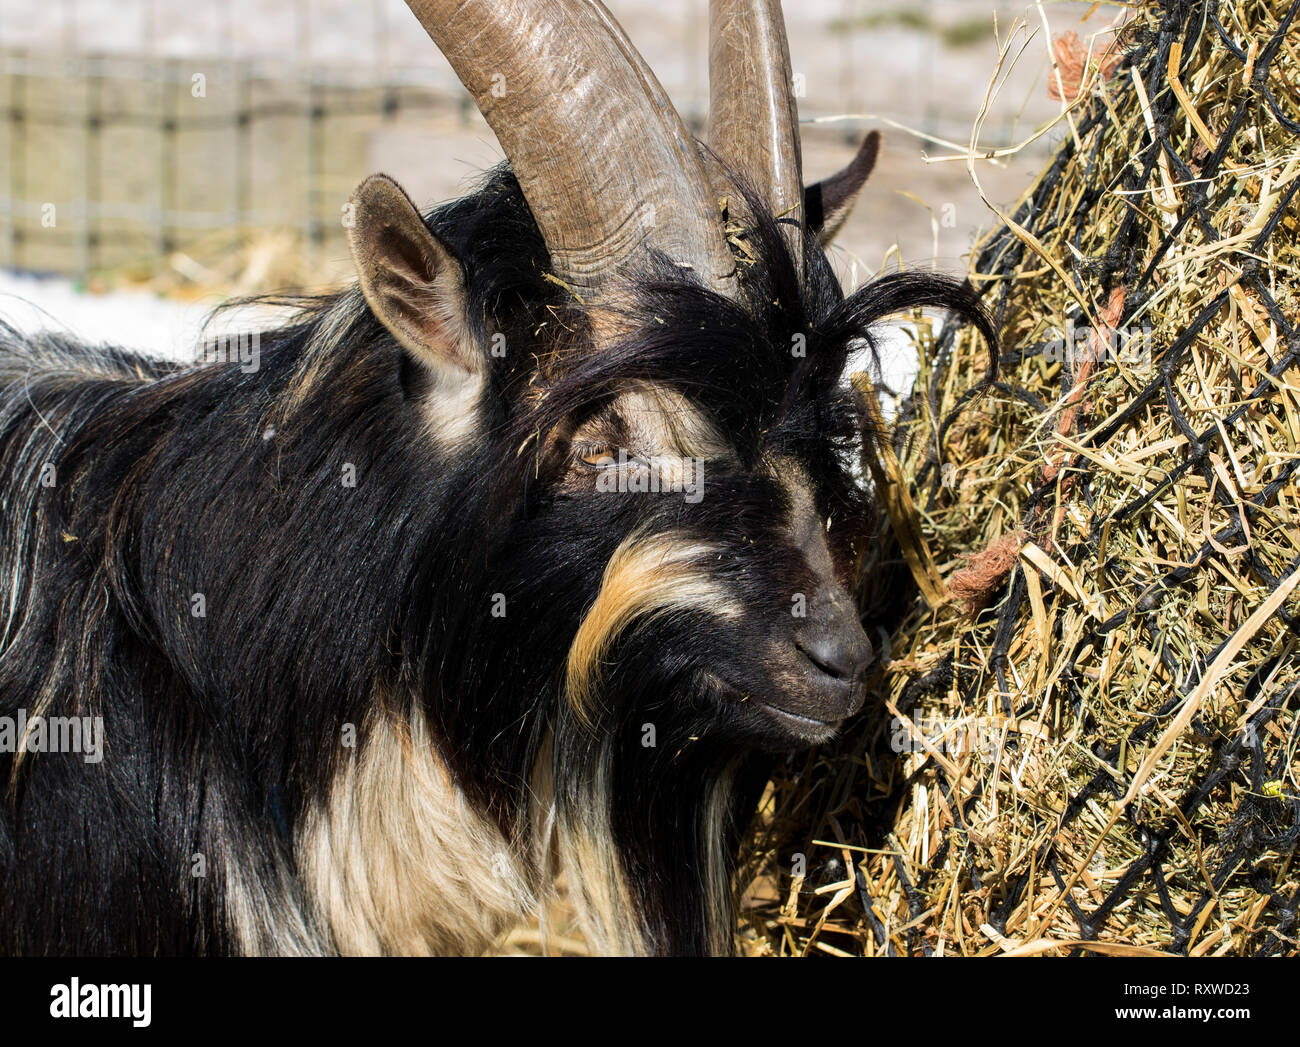 Billy goat with long horns chewing on hay close up. Adorable and furry goat eating food close up on a farm in the winter time. - Stock Image